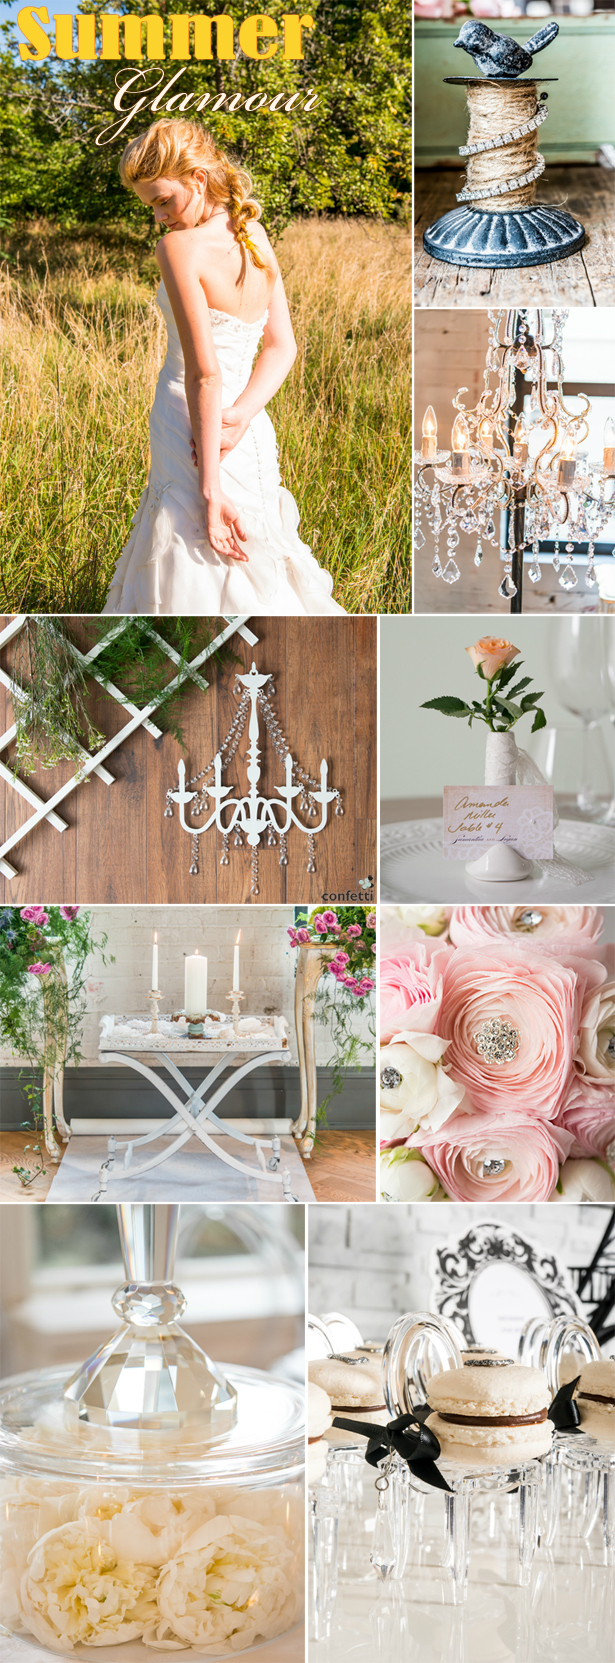 Summer Glamour Wedding | Confetti.co.uk